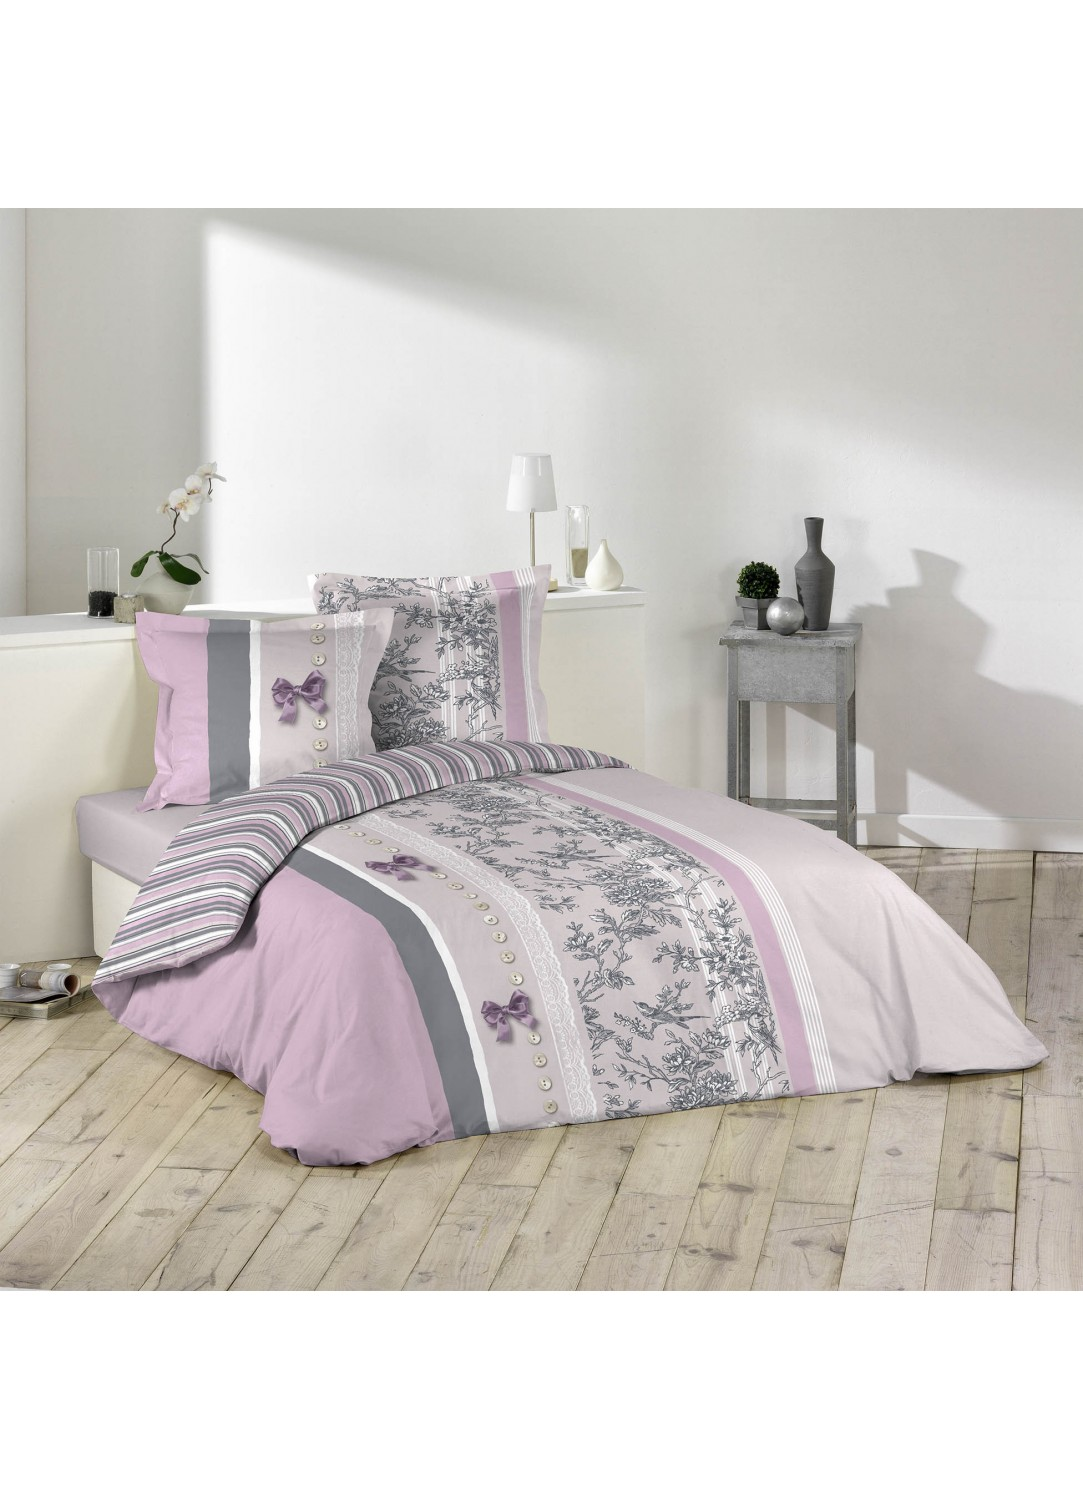 parure de lit 2 personnes charmance violet. Black Bedroom Furniture Sets. Home Design Ideas